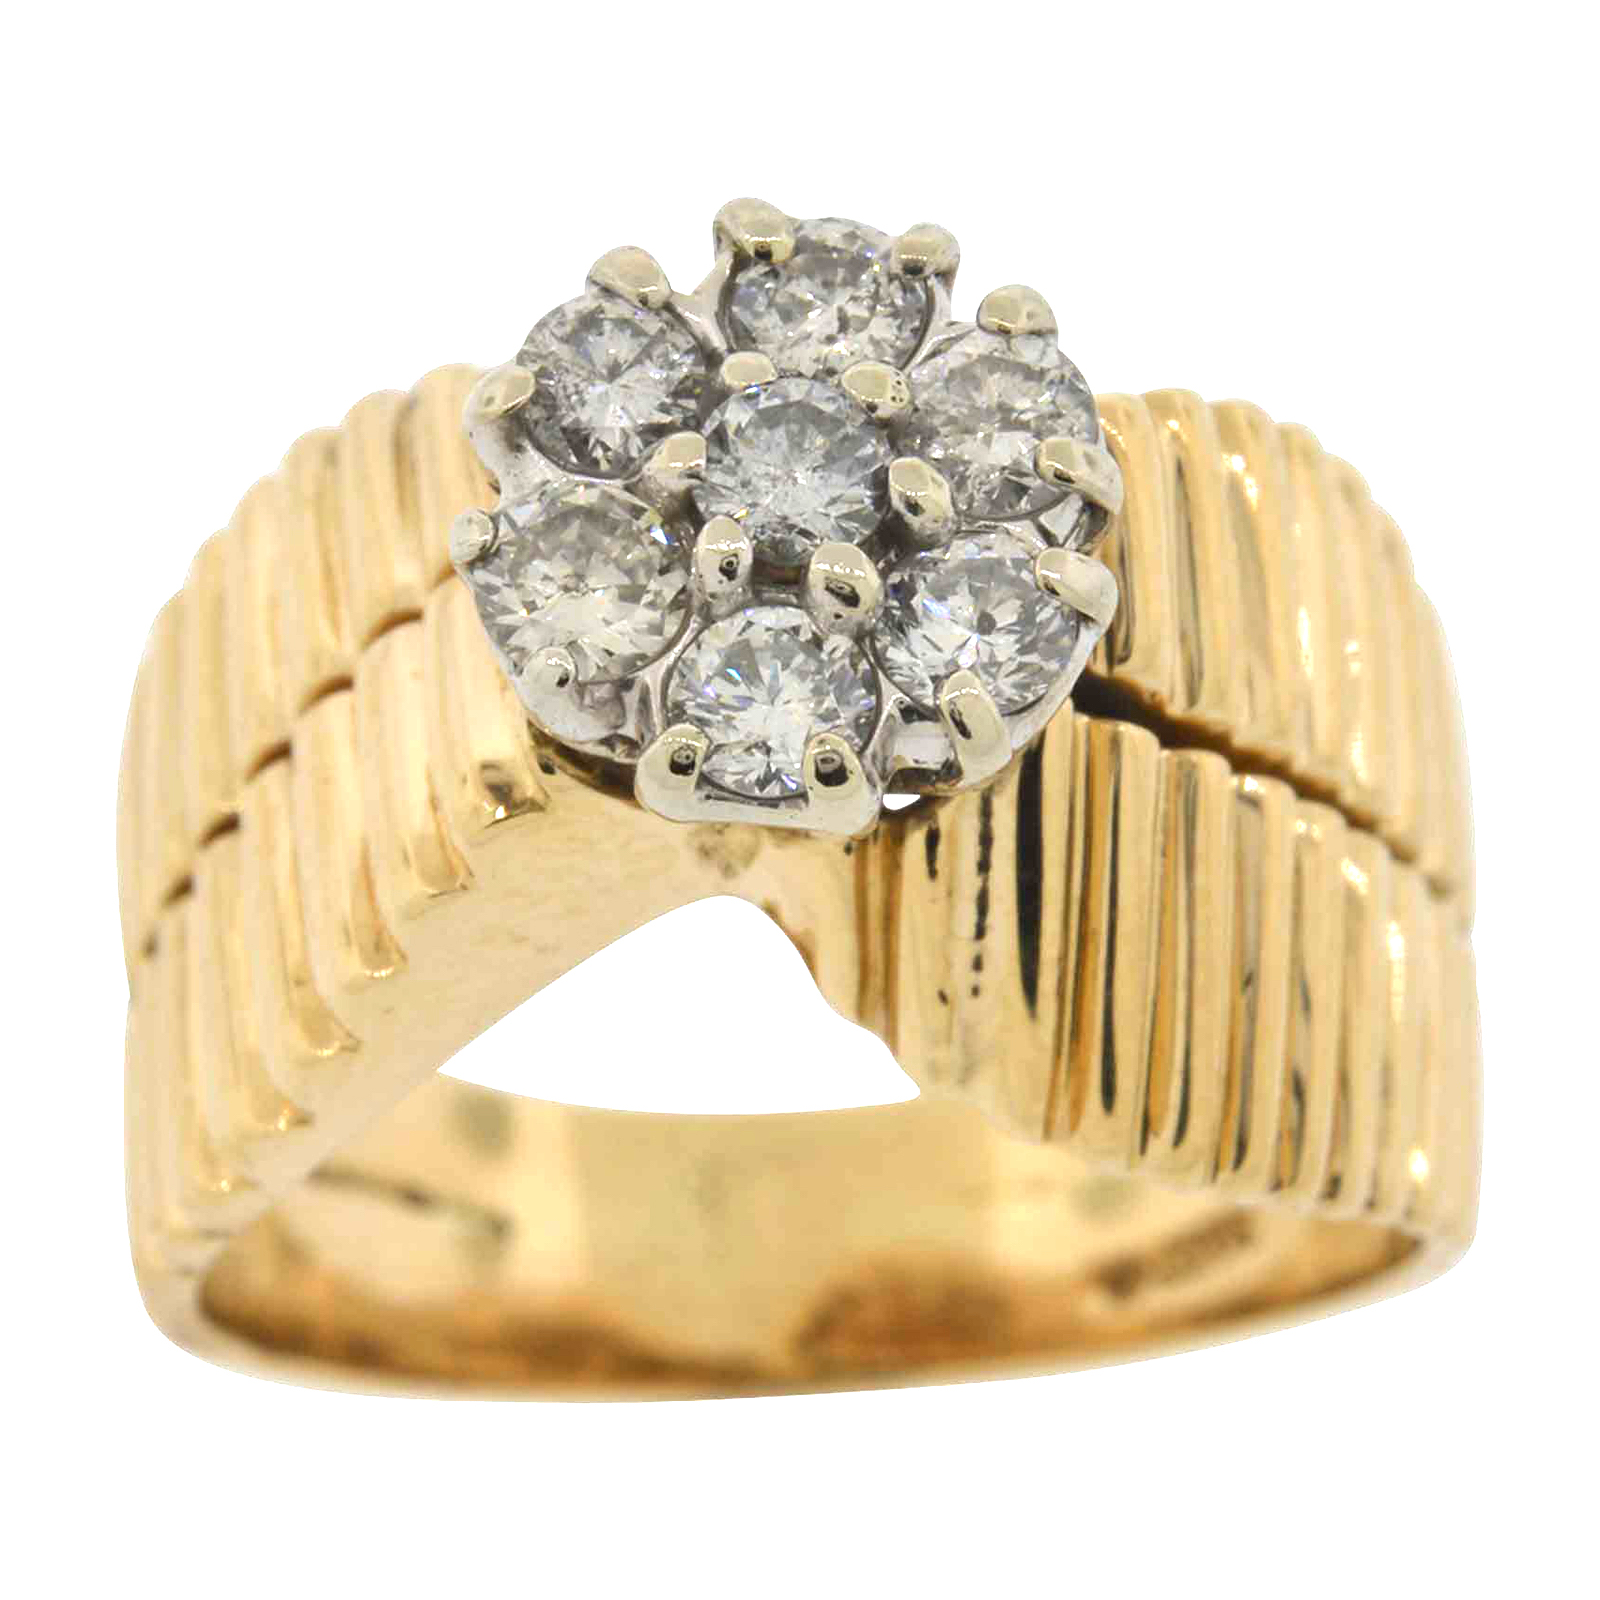 d7f6b60be Details about Ladies Real 14K Gold Genuine Diamond Cluster Ring 7 Stone  Vintage Estate Women's